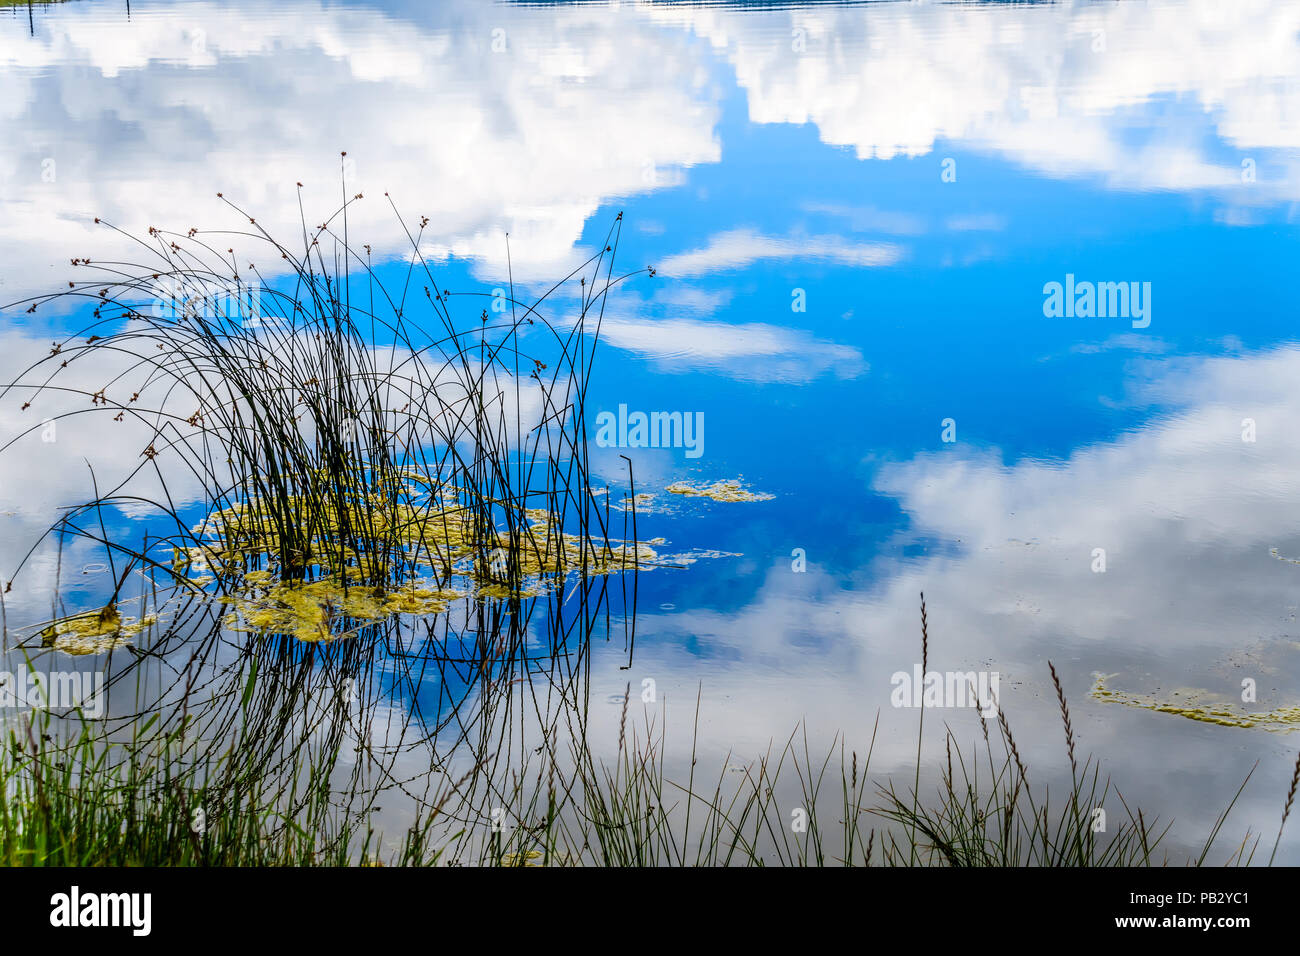 Reeds in Trapp Lake with Blue Sky and Clouds reflected on the smooth water surface. Trapp Lake is located along Highway 5A in British Columbia, Canada - Stock Image